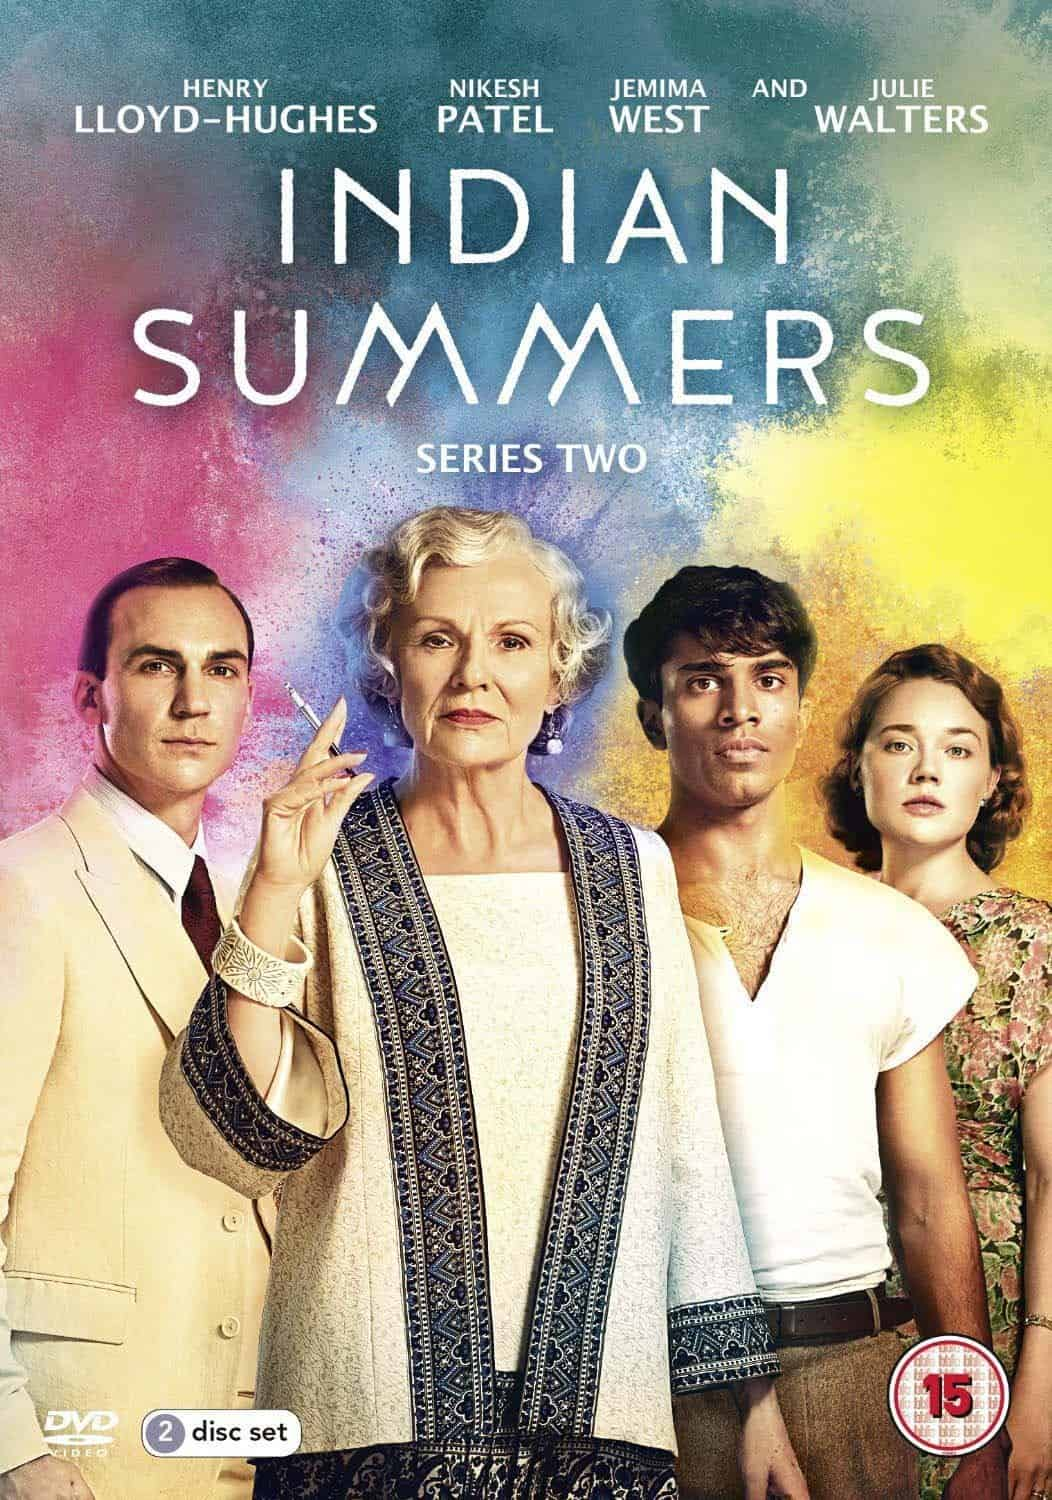 Indian summers series 2 review blueprint review malvernweather Images